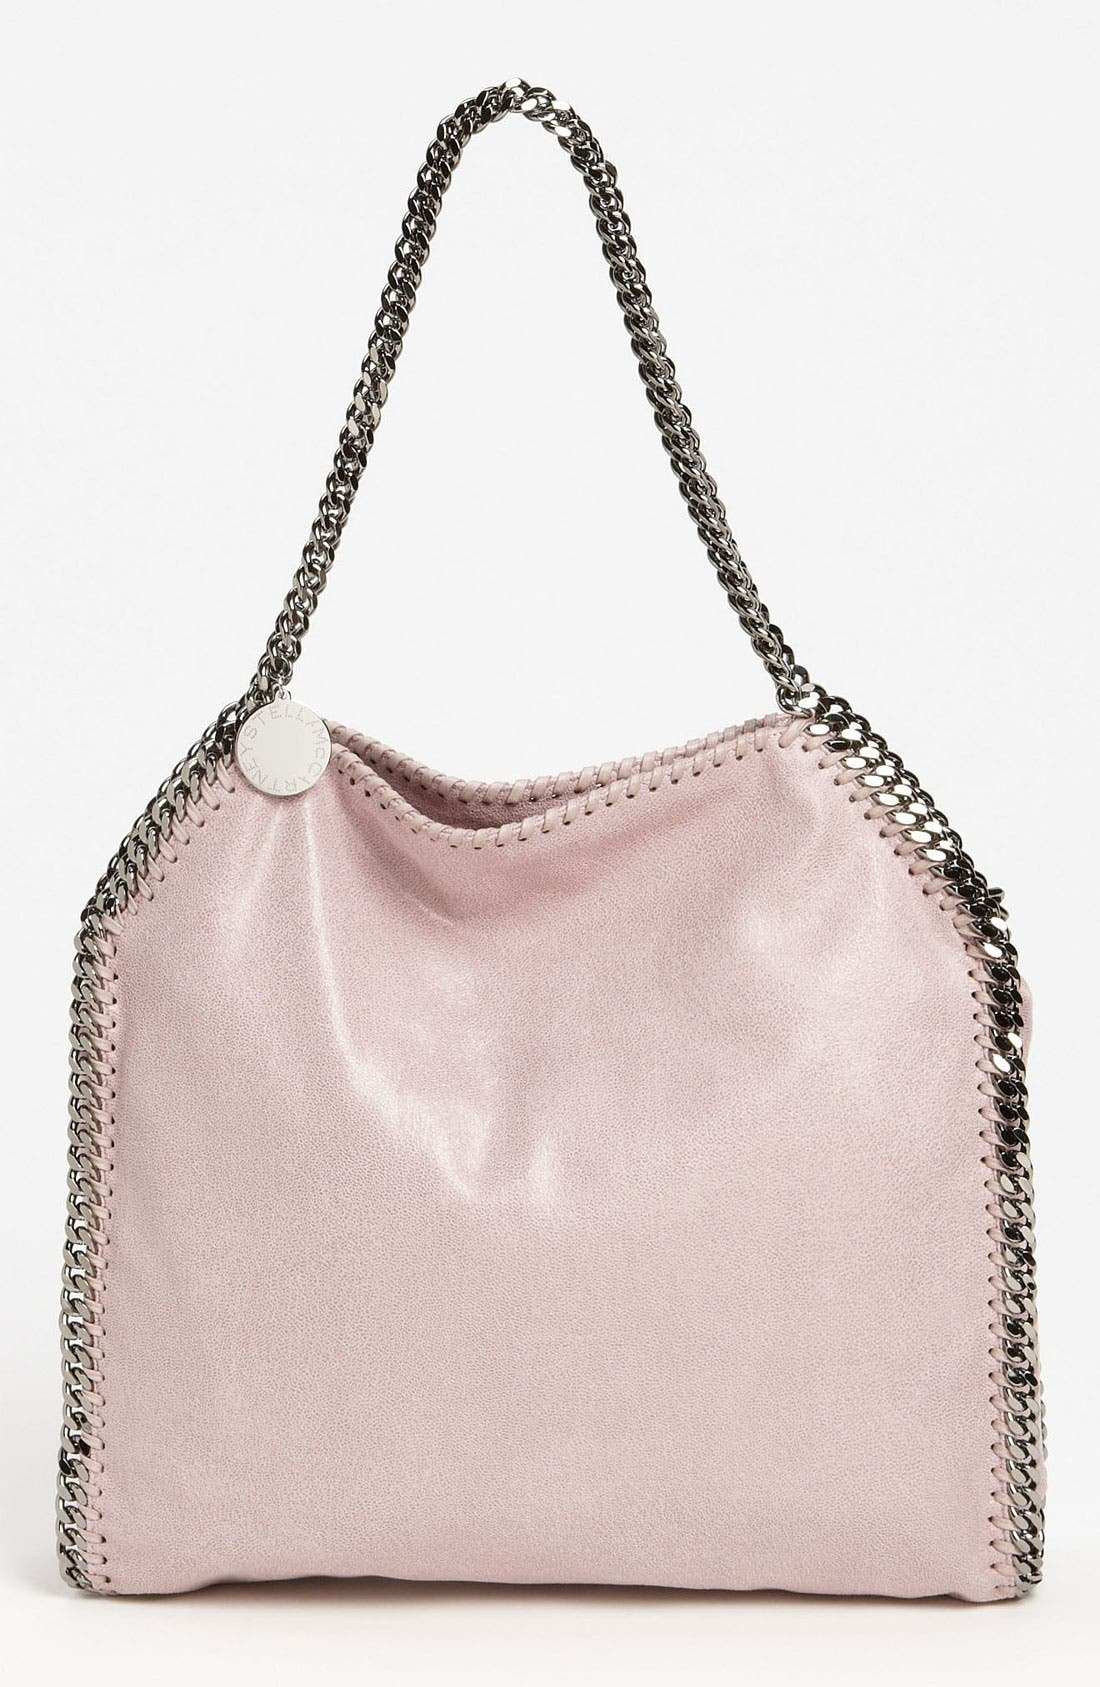 Main Image - Stella McCartney 'Small Falabella - Shaggy Deer' Faux Leather Tote